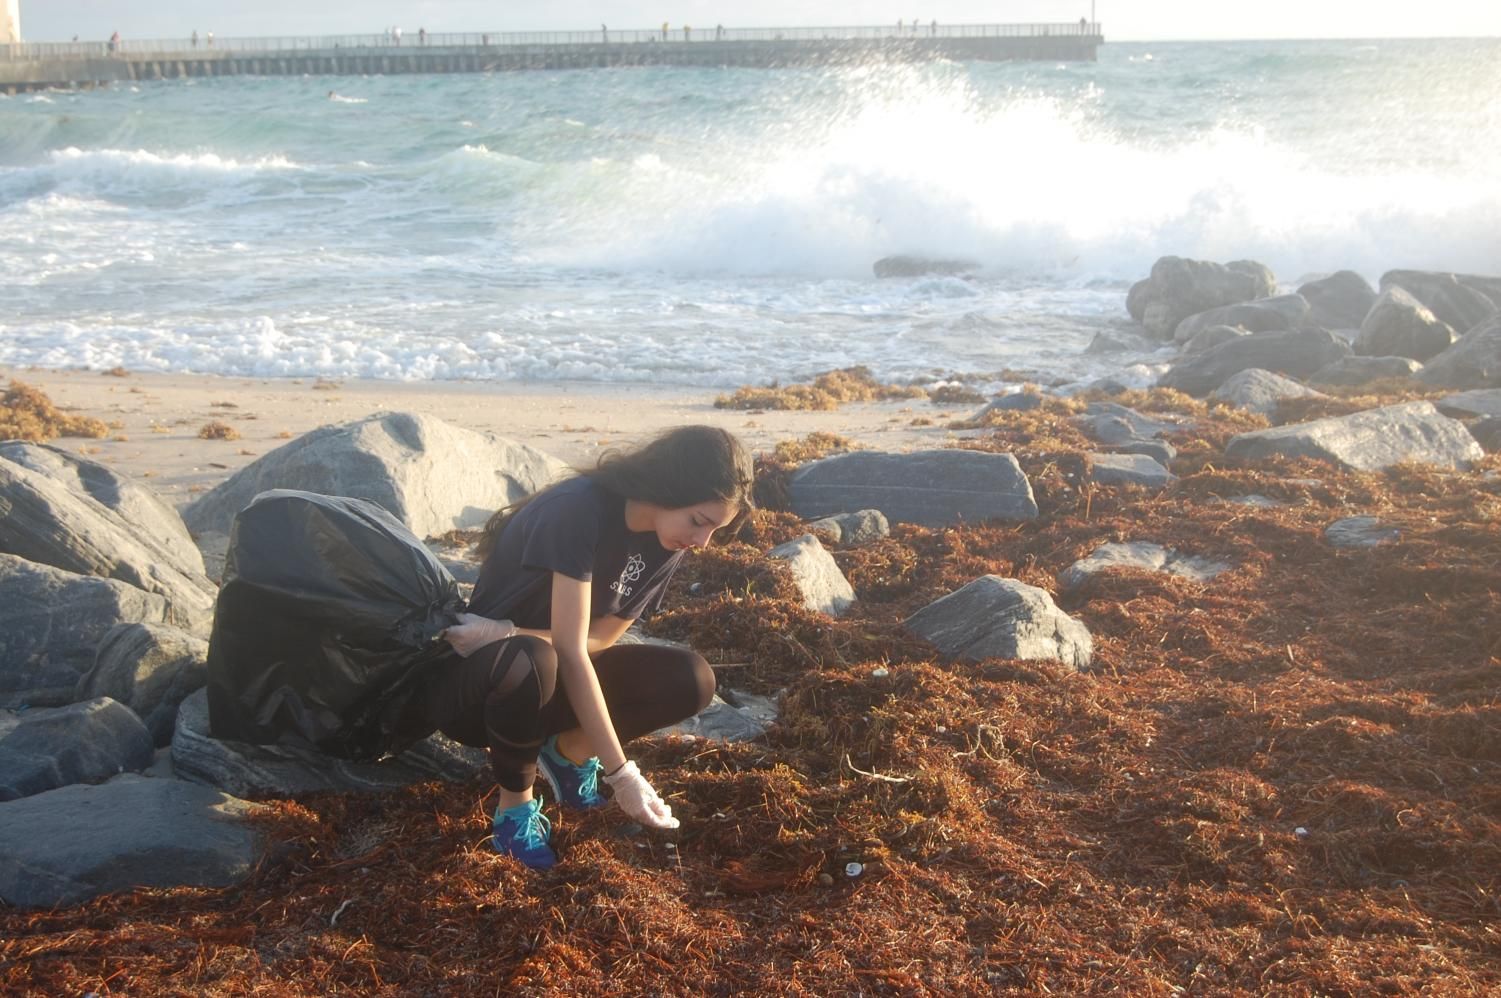 Senior Reyna Jackson searches for trash among the seaweed.